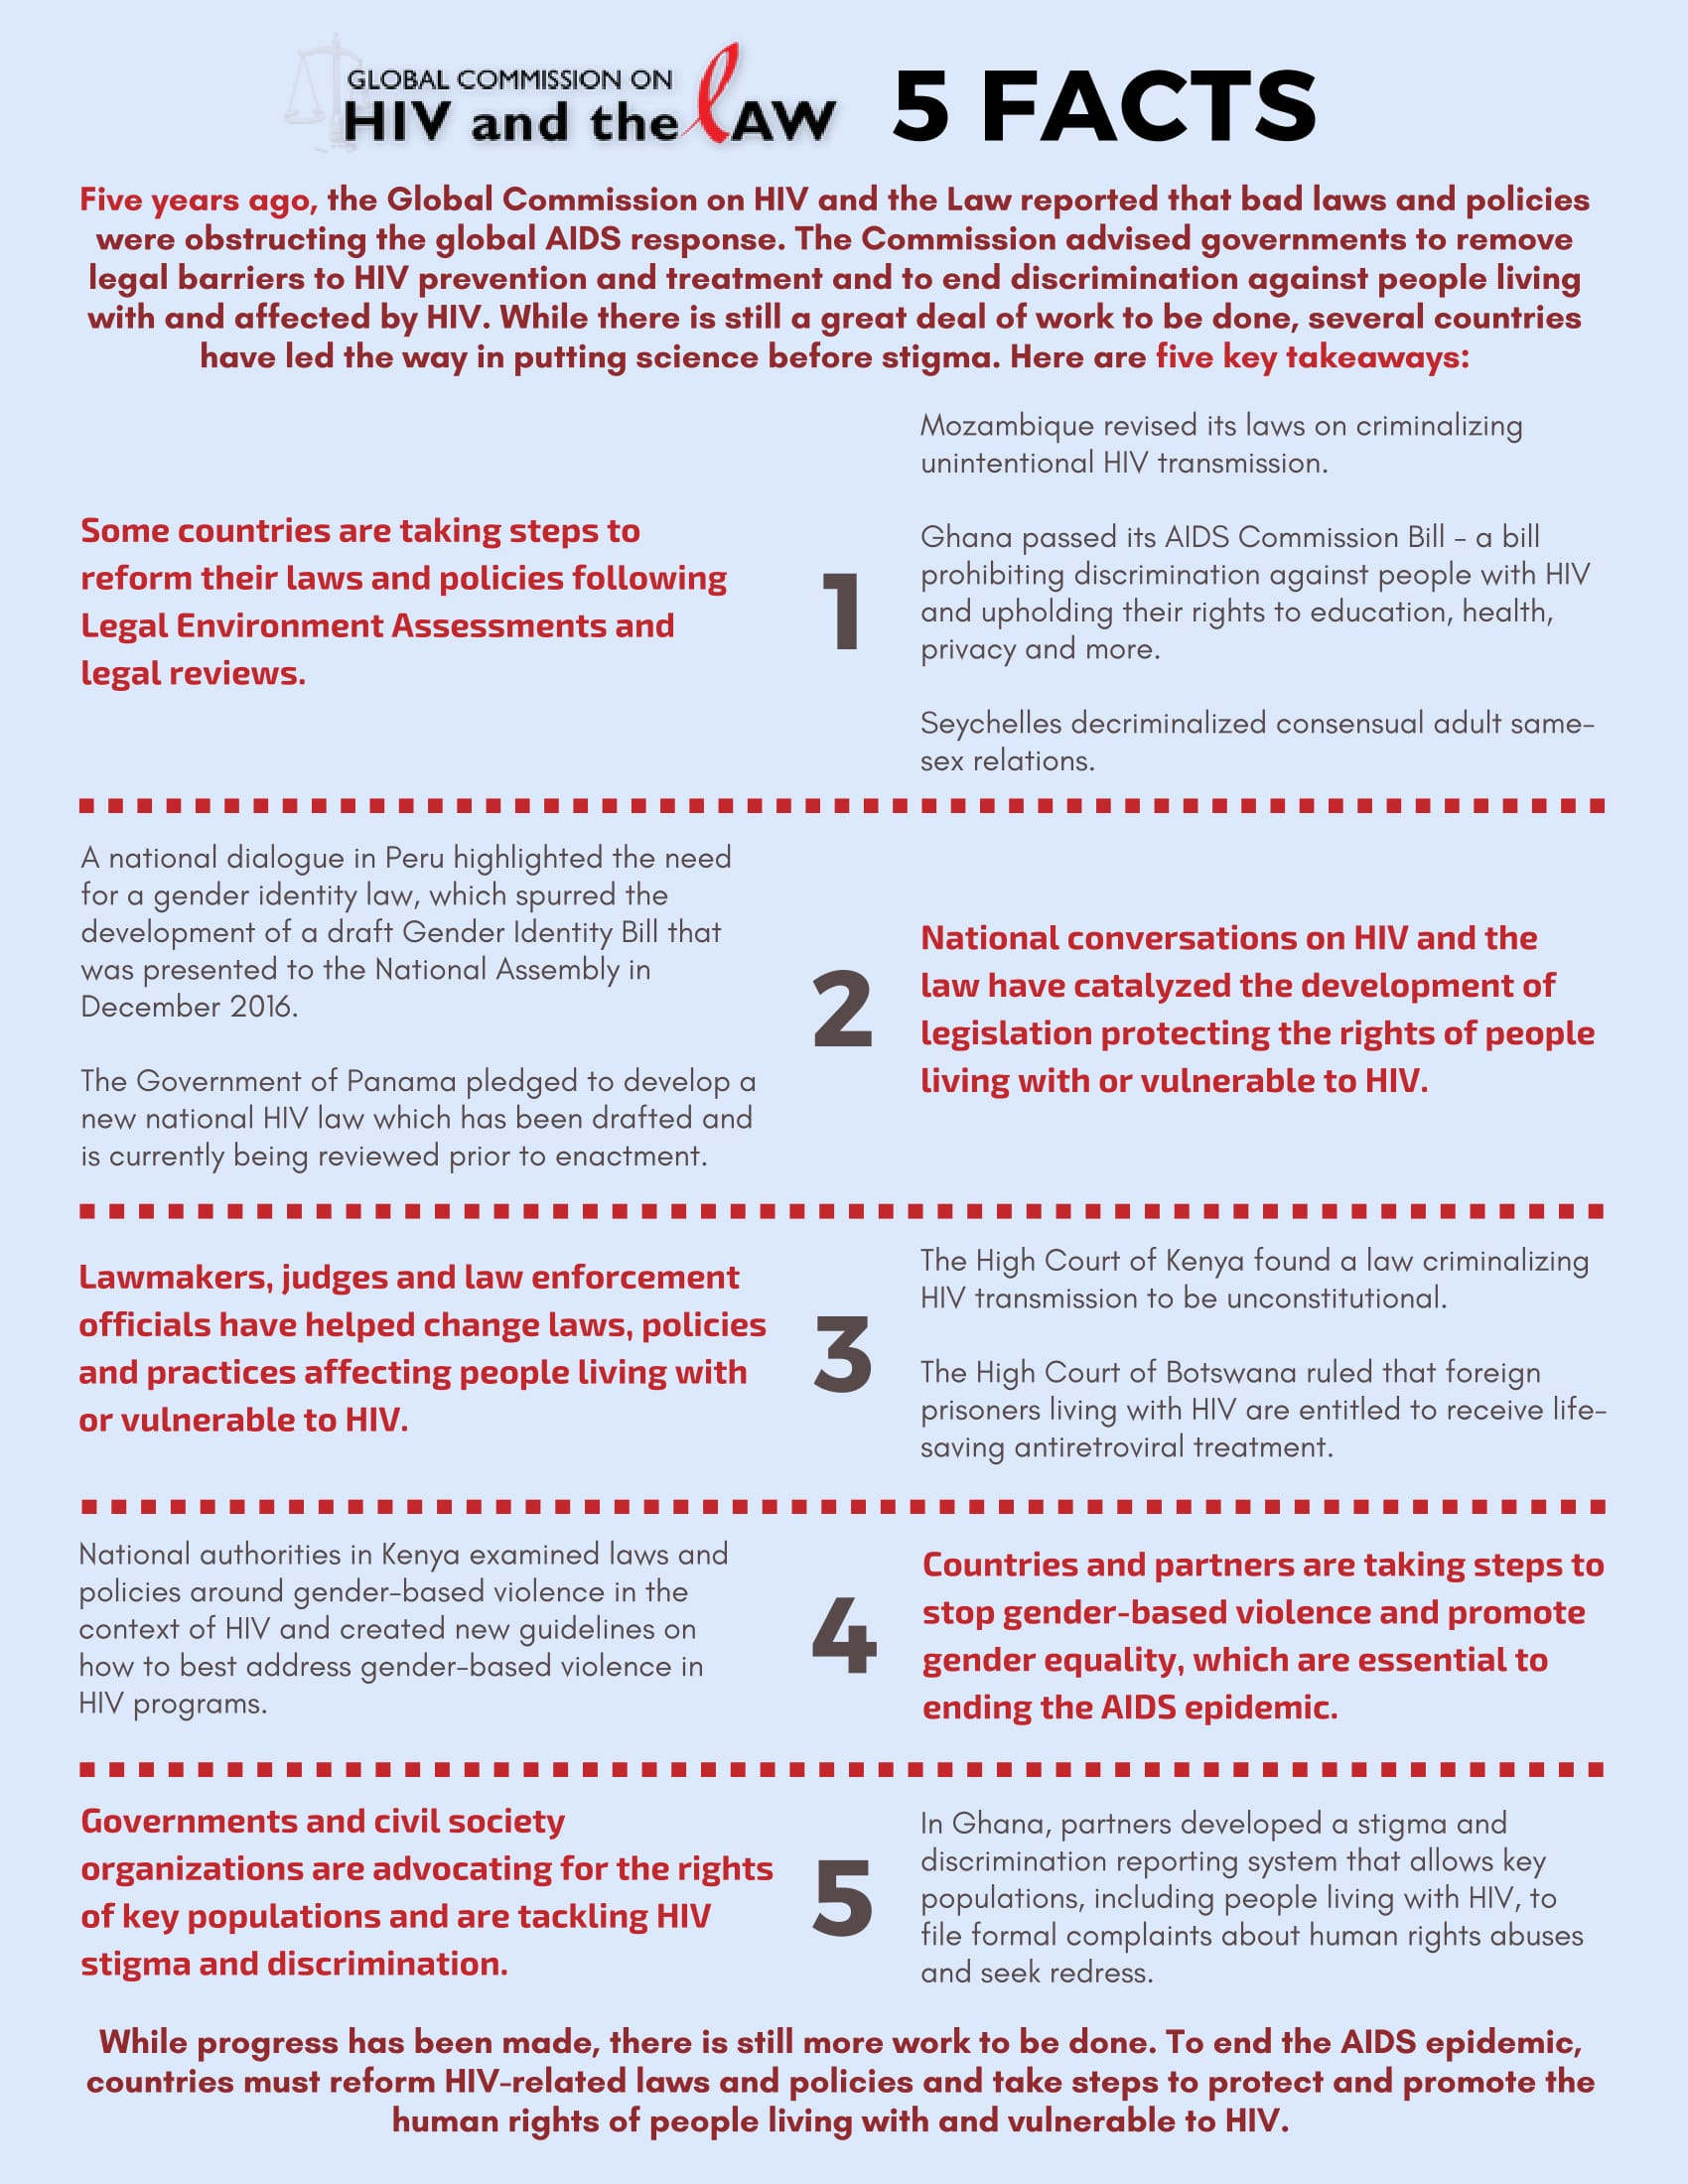 Global Commission on HIV and the Law: 5 Facts